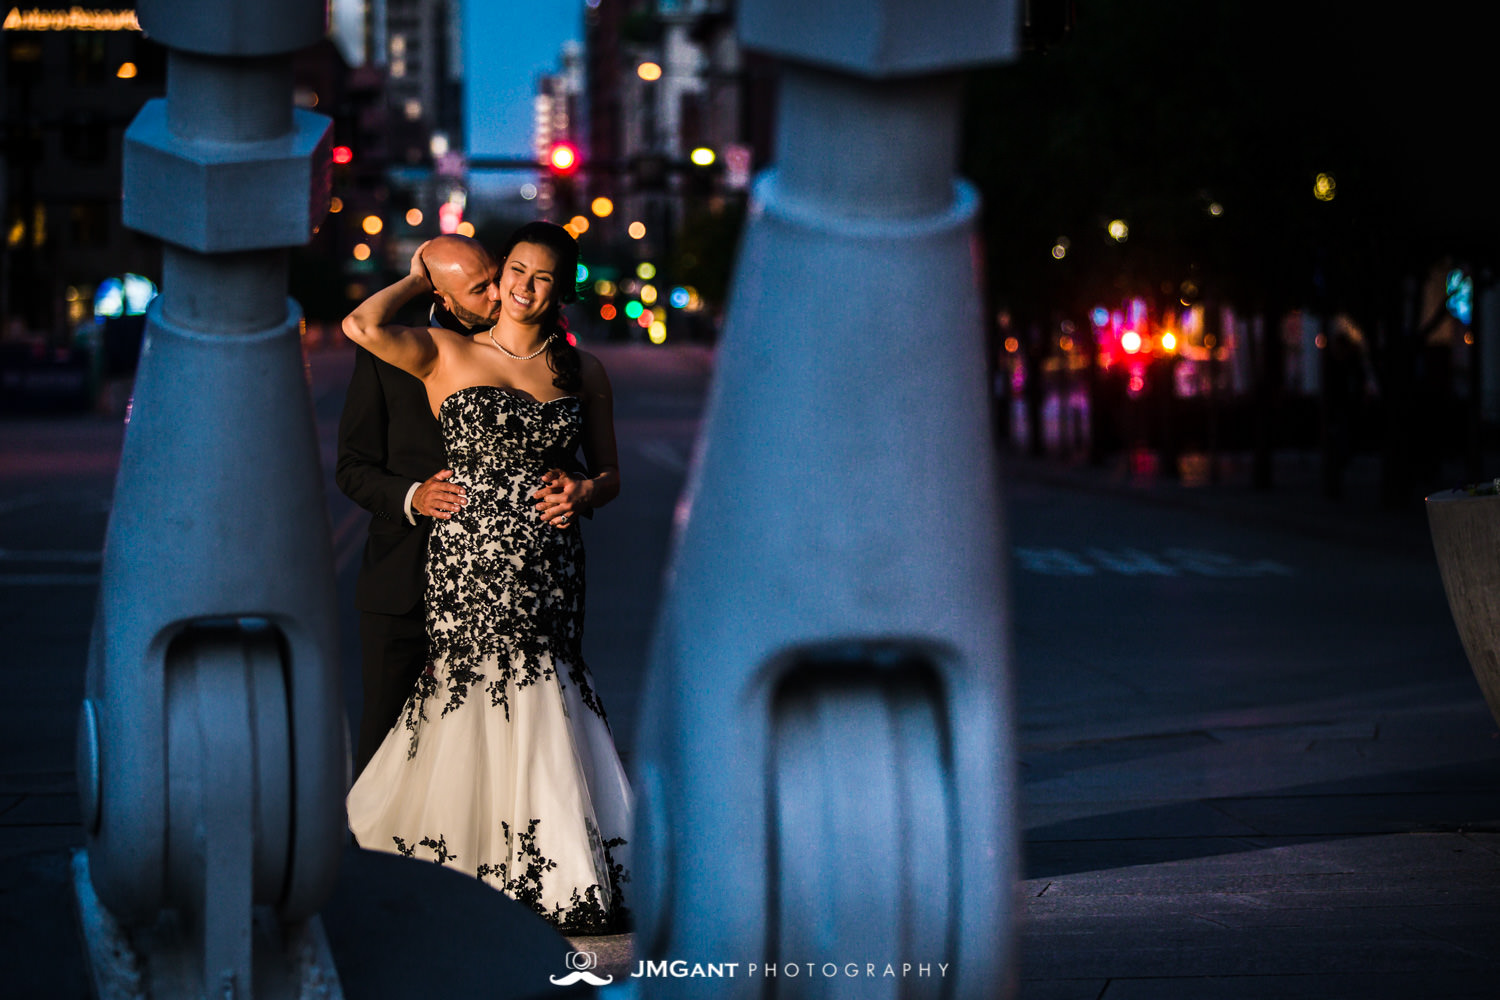 Downtown Denver Oxford Hotel Wedding Photographed by JMGant Photography